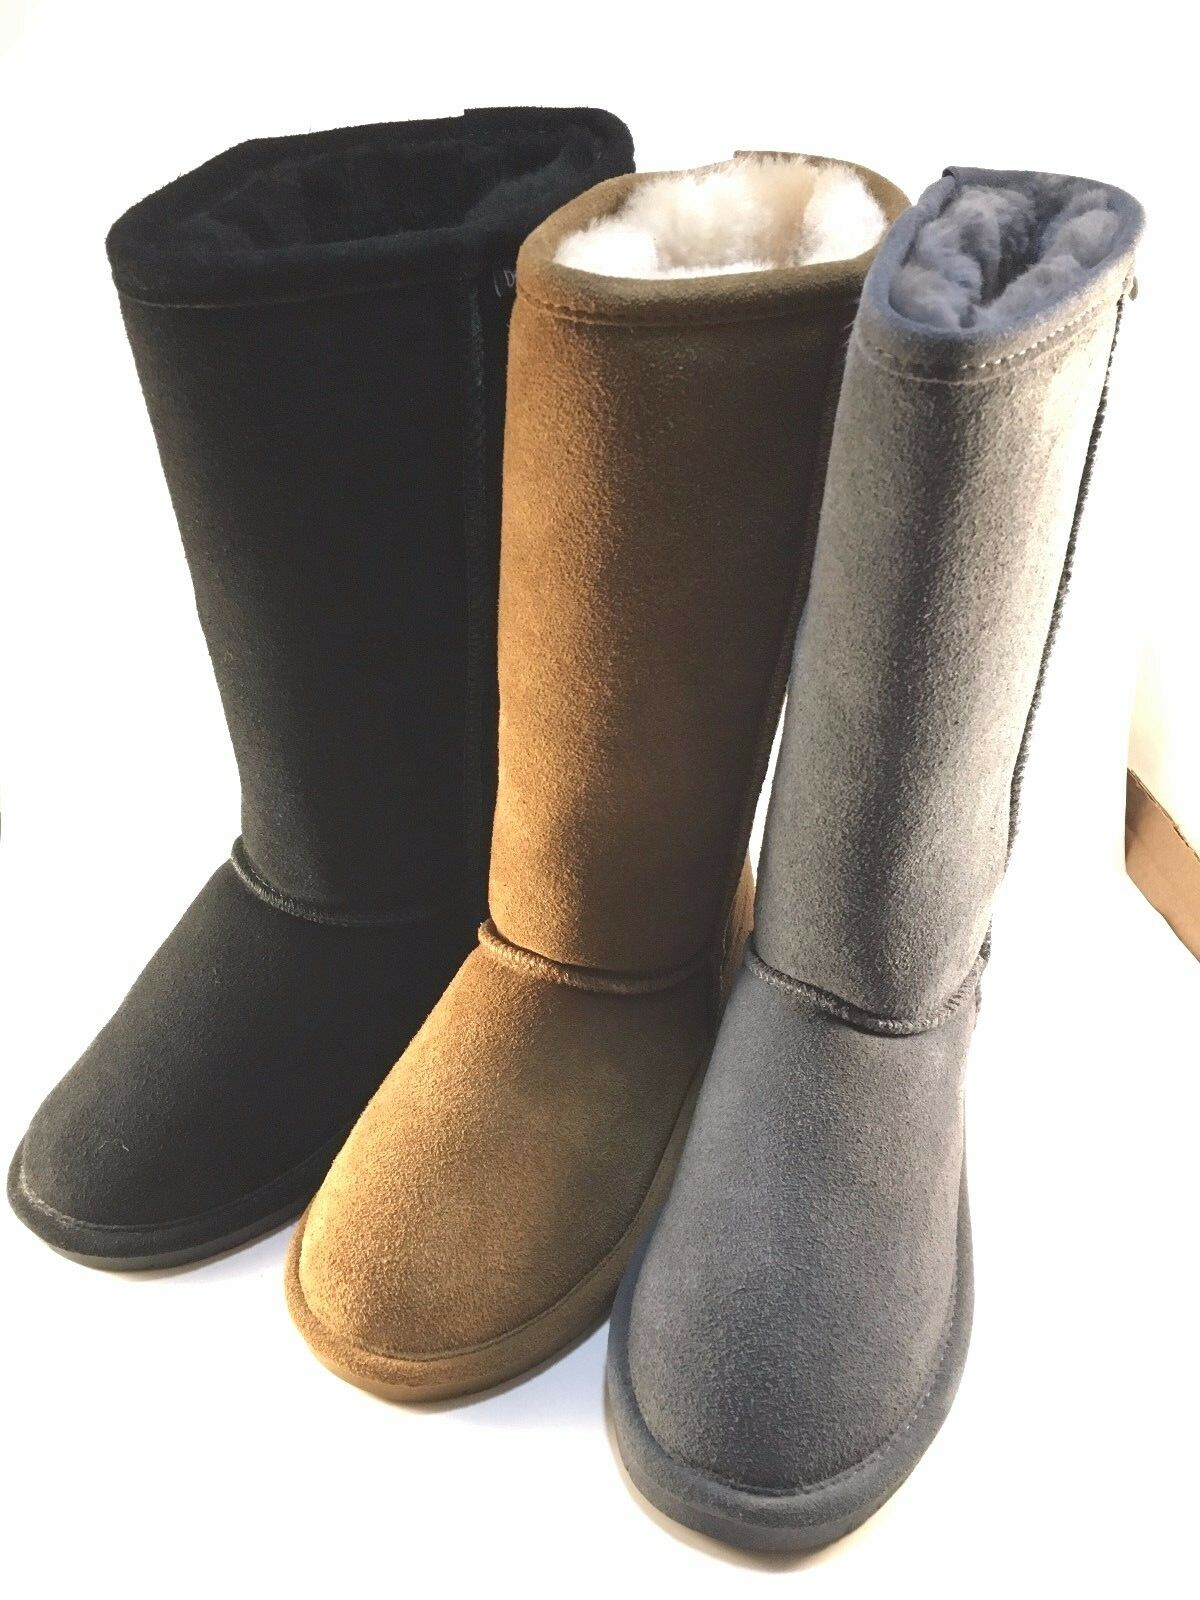 BearPaw Emma Tall Flat Suede Sheep Skin Wool Lining Pull On Boot Choose Sz color